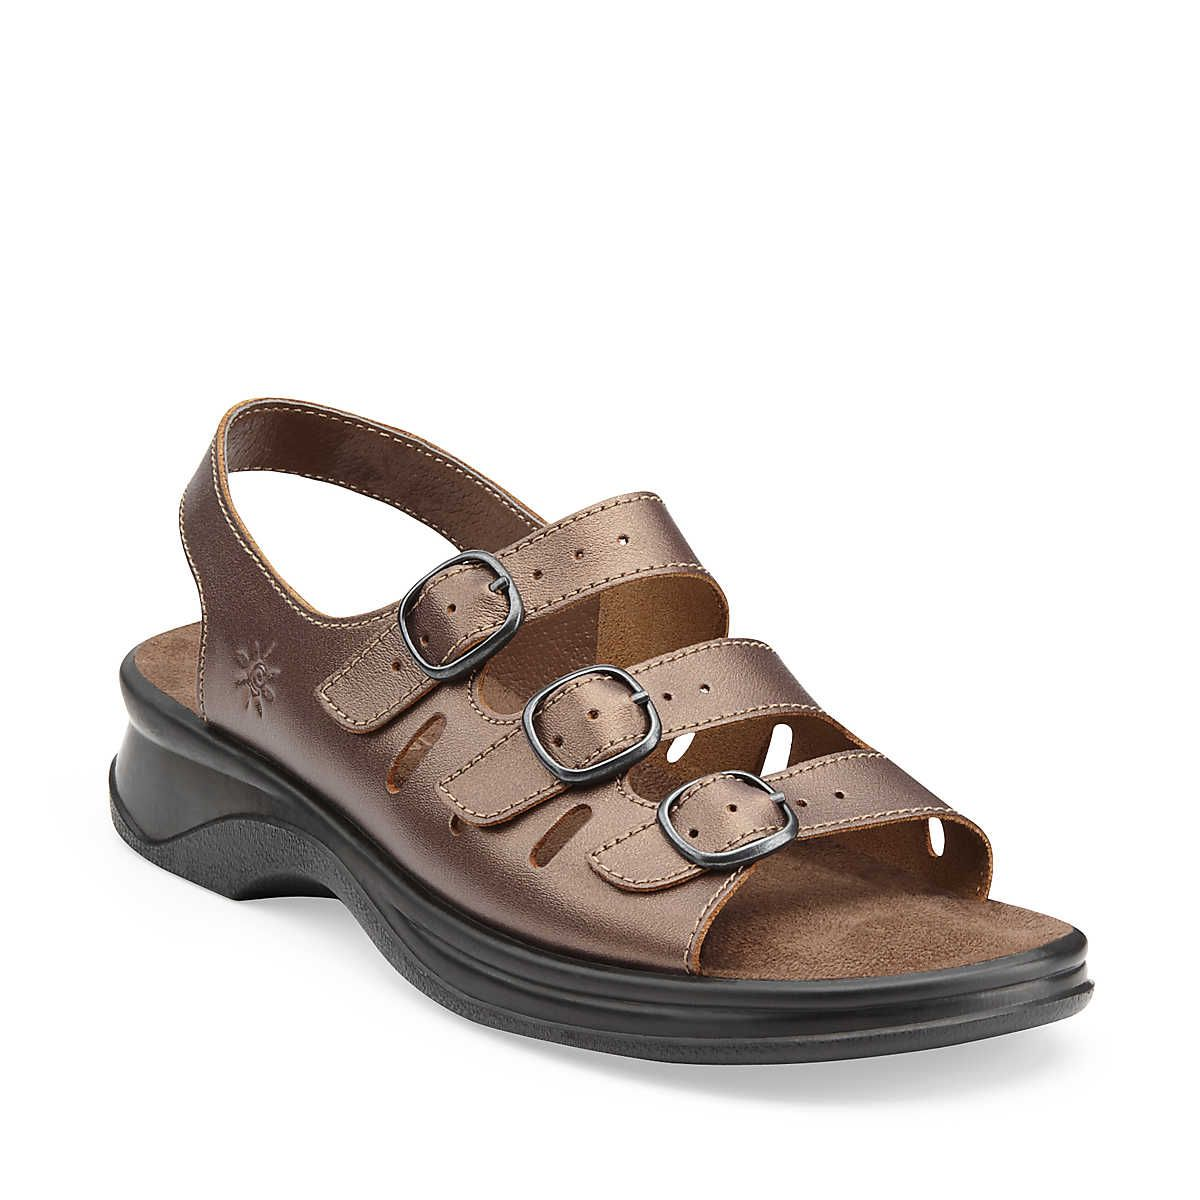 Sunbeat in Bronze Leather - Womens Sandals from Clarks i have flat feet and fallen arches and these are the most comfortable sandals ever and all leather so soft i never get any blisters either due to my super sensitive feet.